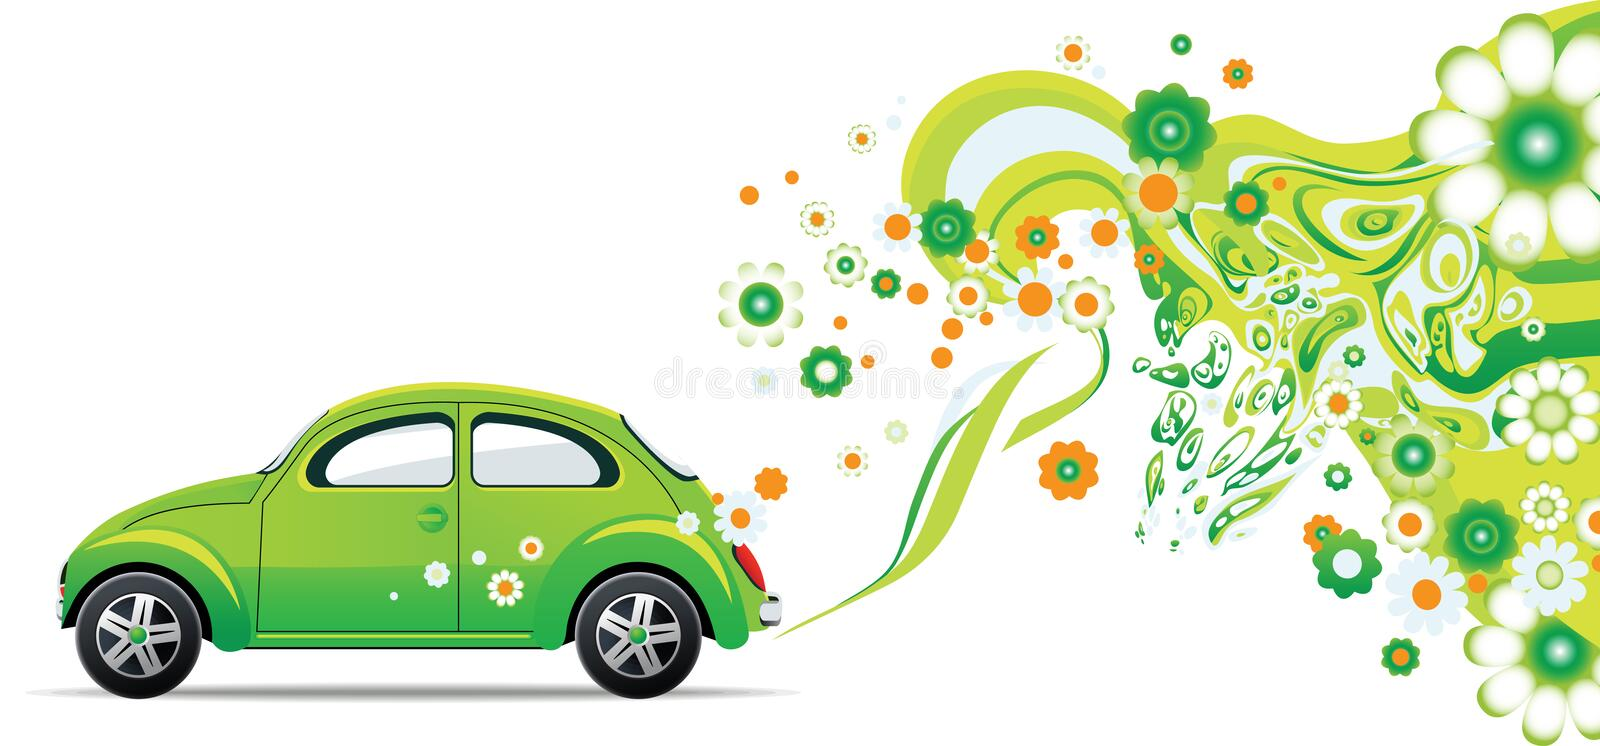 Download Environmental Car stock vector. Illustration of cloud - 9663152